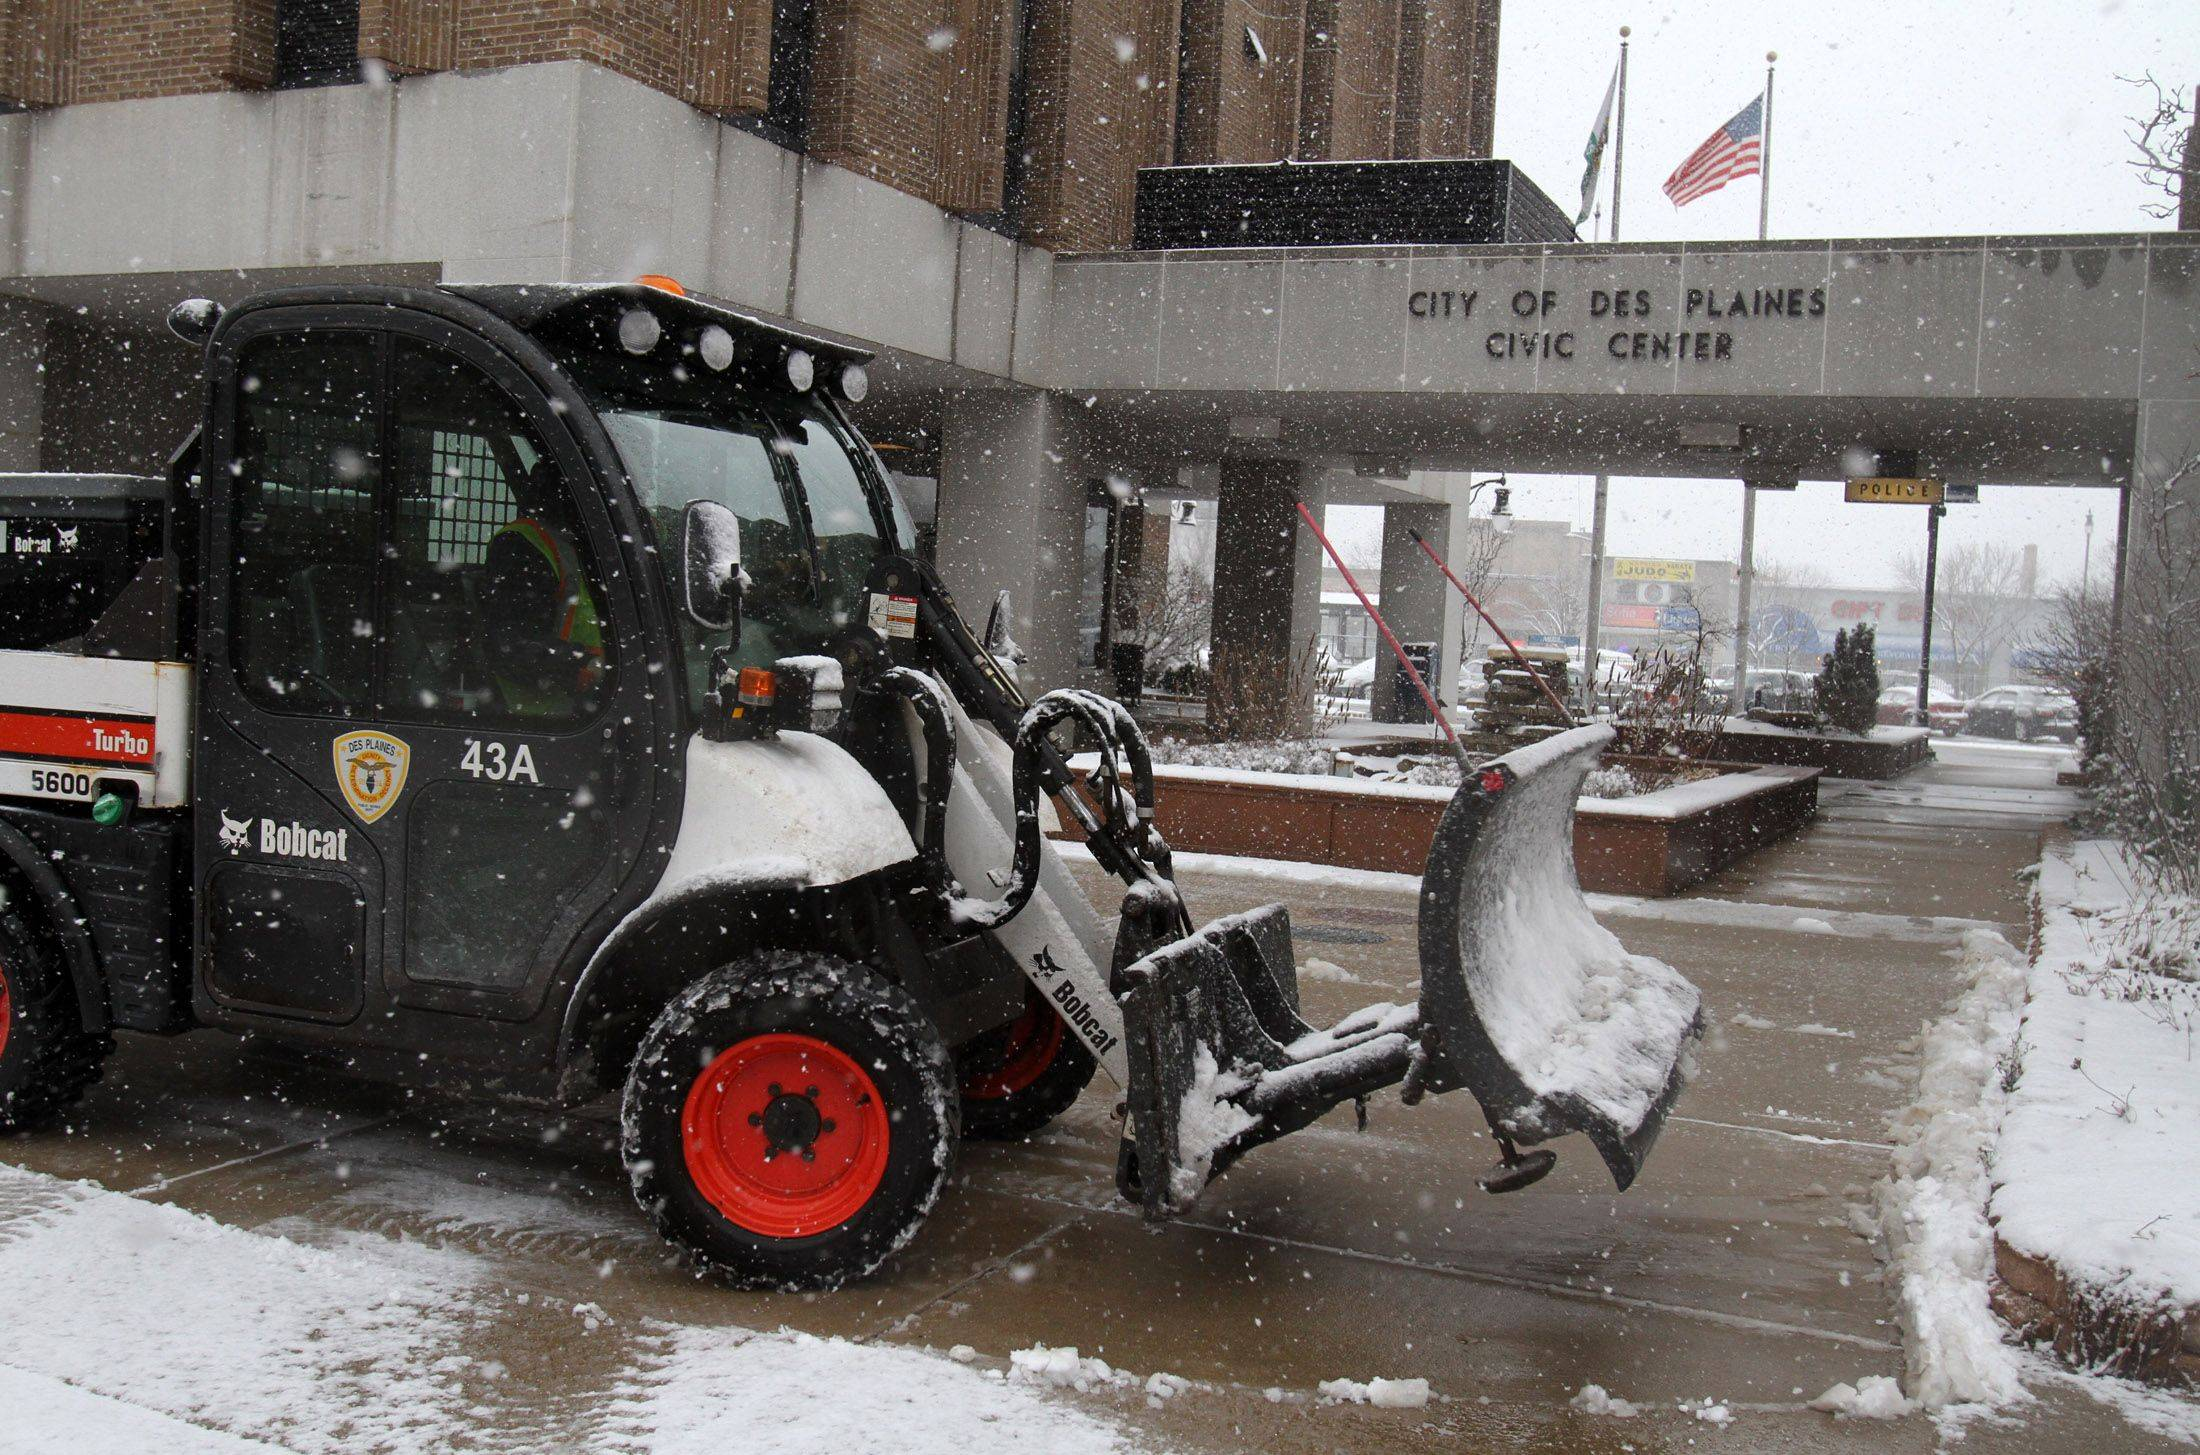 Barry Horner with Des Plaines Public Works and Engineering Department plows the sidewalk near City of Des Plaines Civic Center.